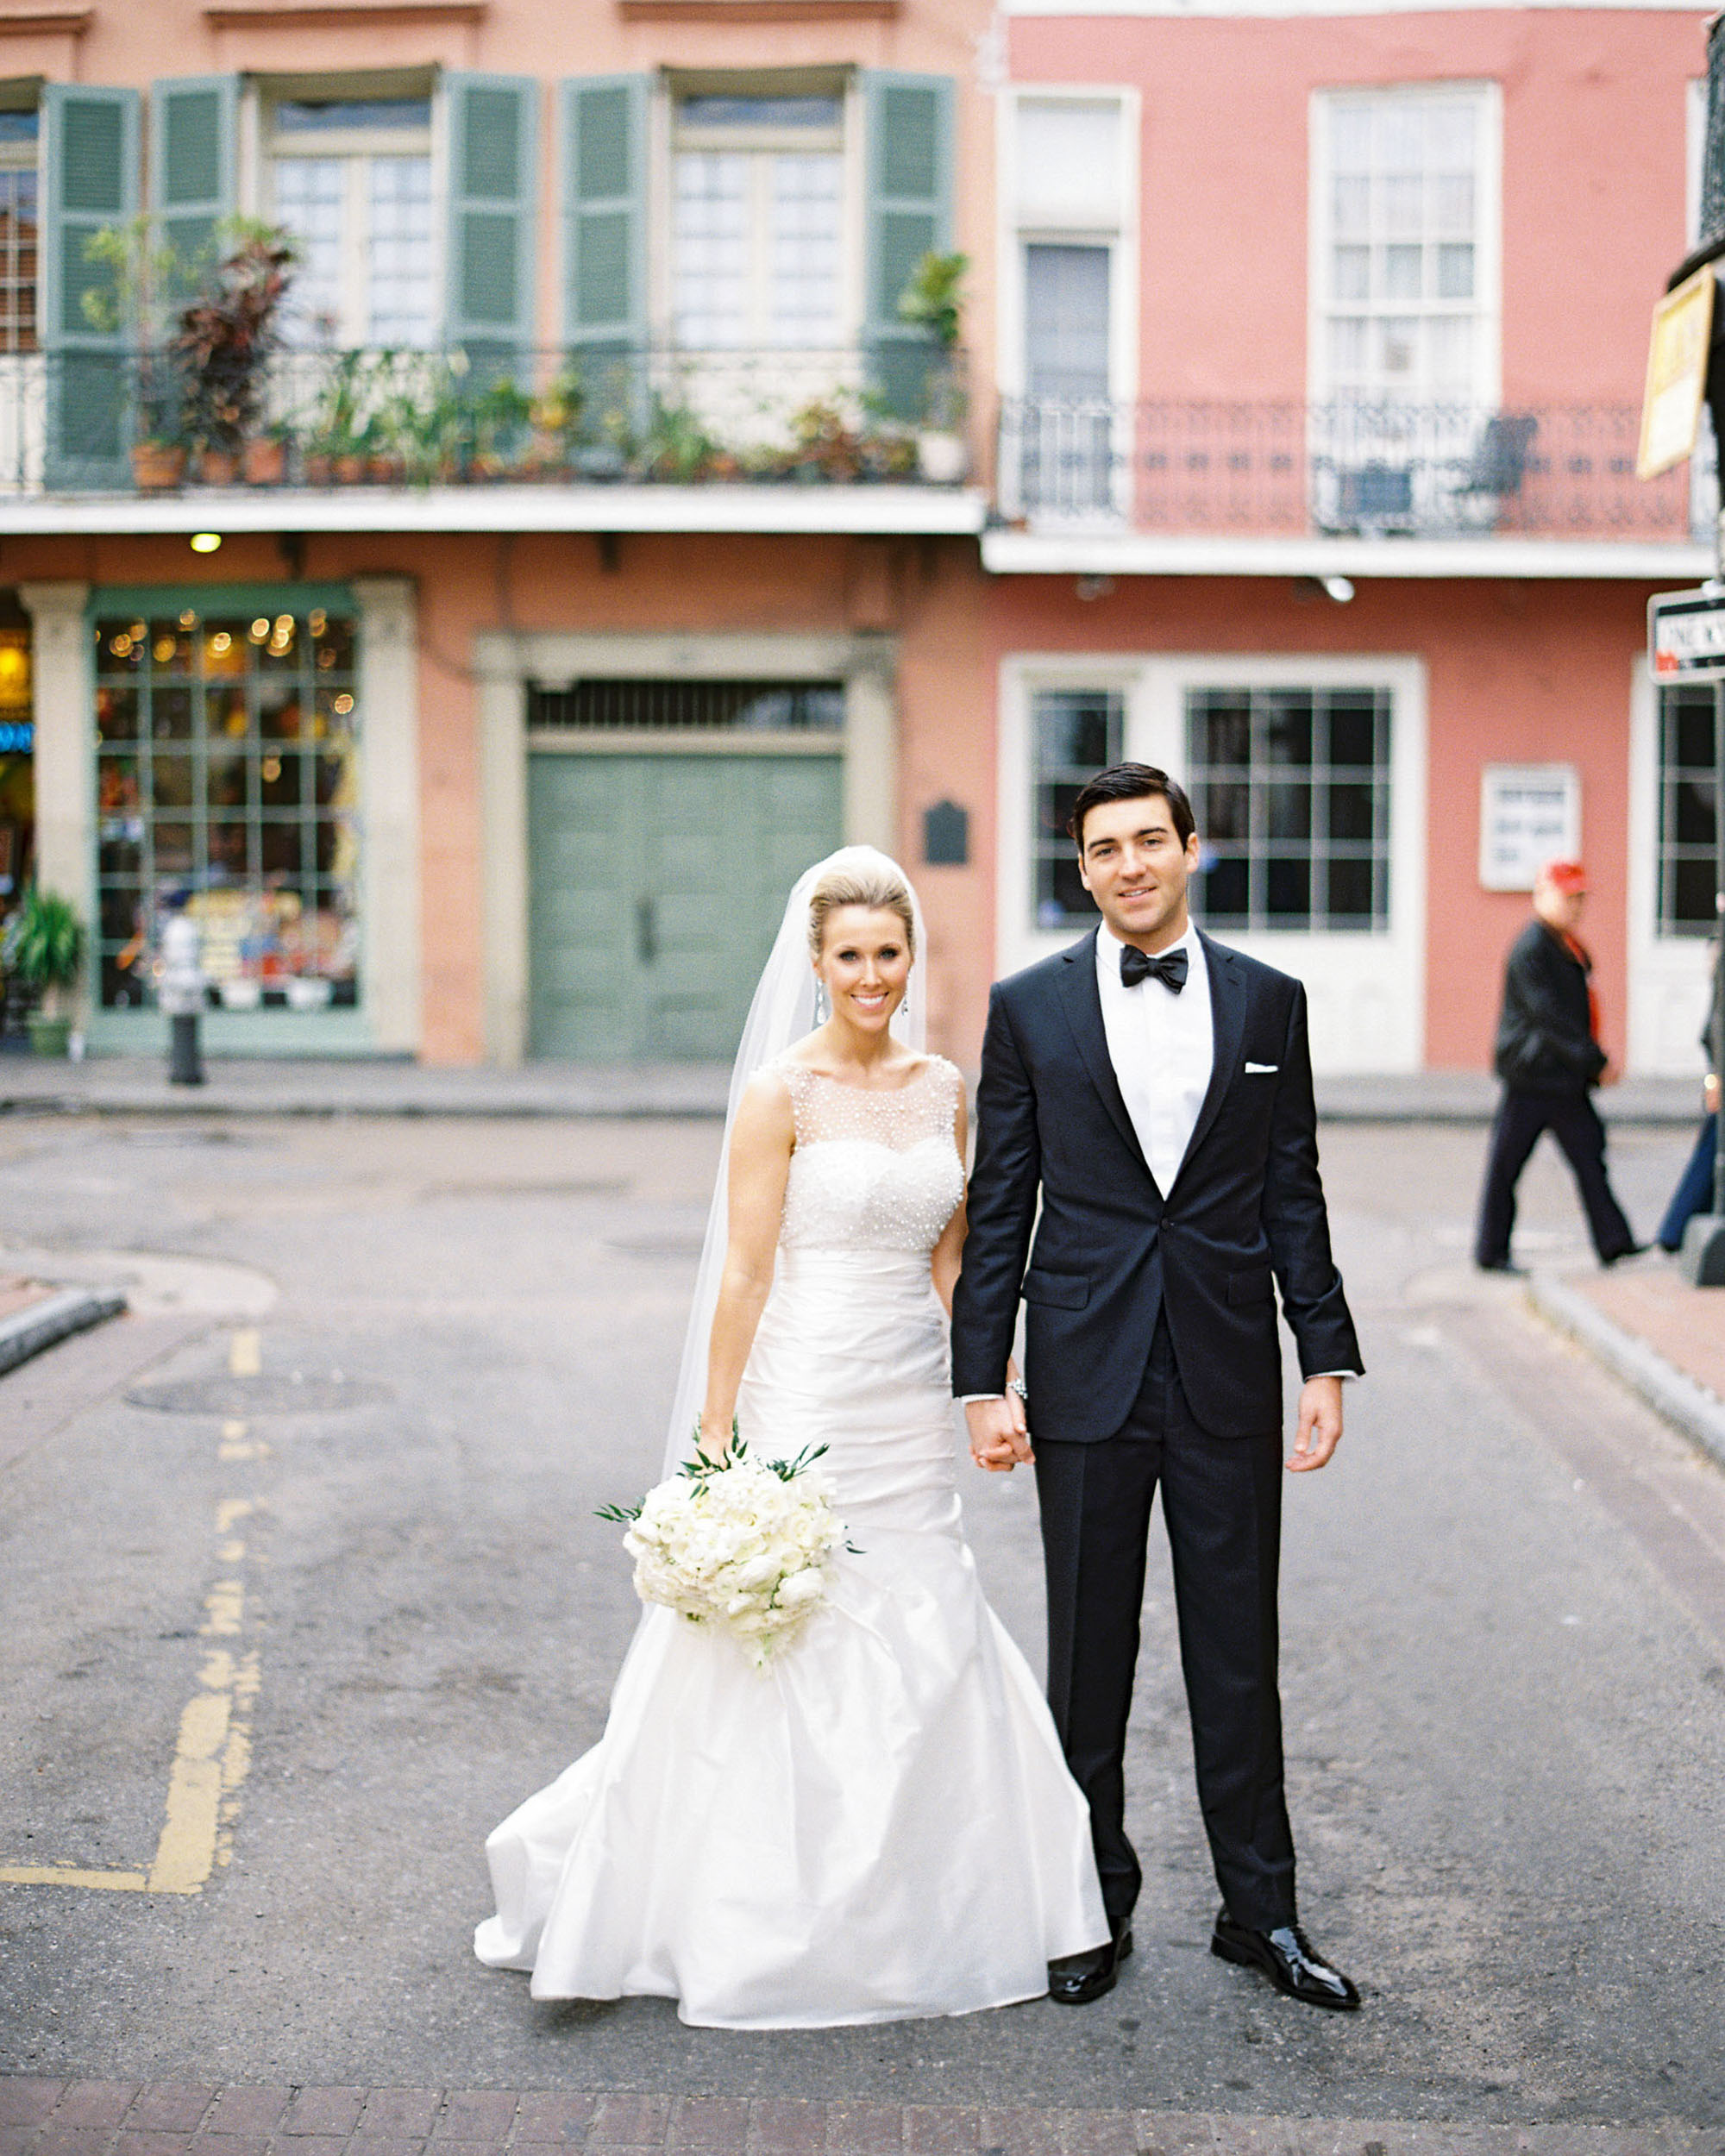 New Orleans Wedding Photographer 0027 - New Orleans